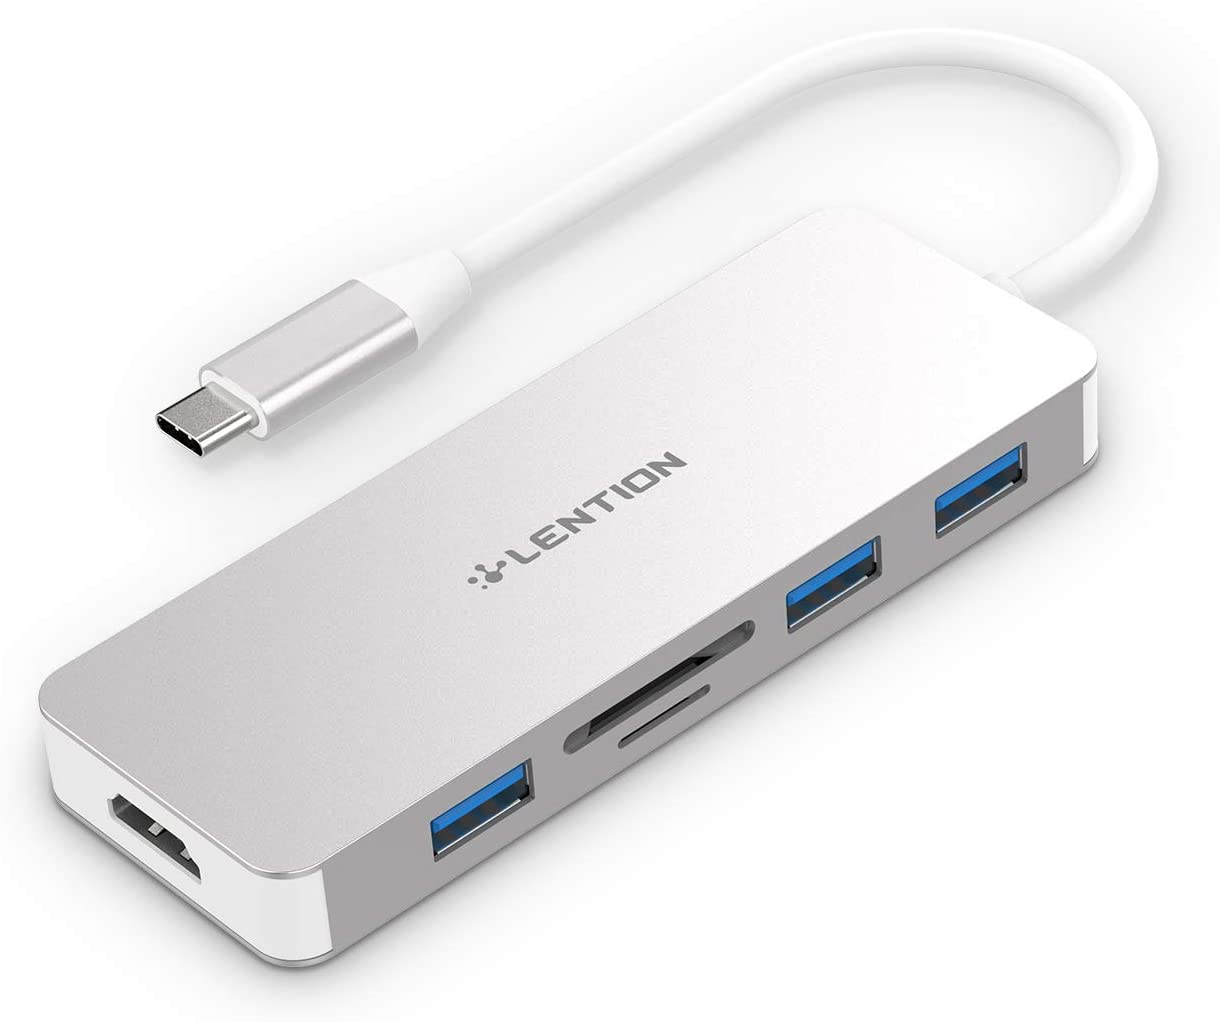 LENTION USB C Hub with 4K HDMI, 3 USB 3.0, SD/Micro SD Card Reader Compatible 2020-2016 MacBook Pro 13/15/16, New Mac Air/Surface, Chromebook, Multi-Port Adapter (CB-C18, Silver)